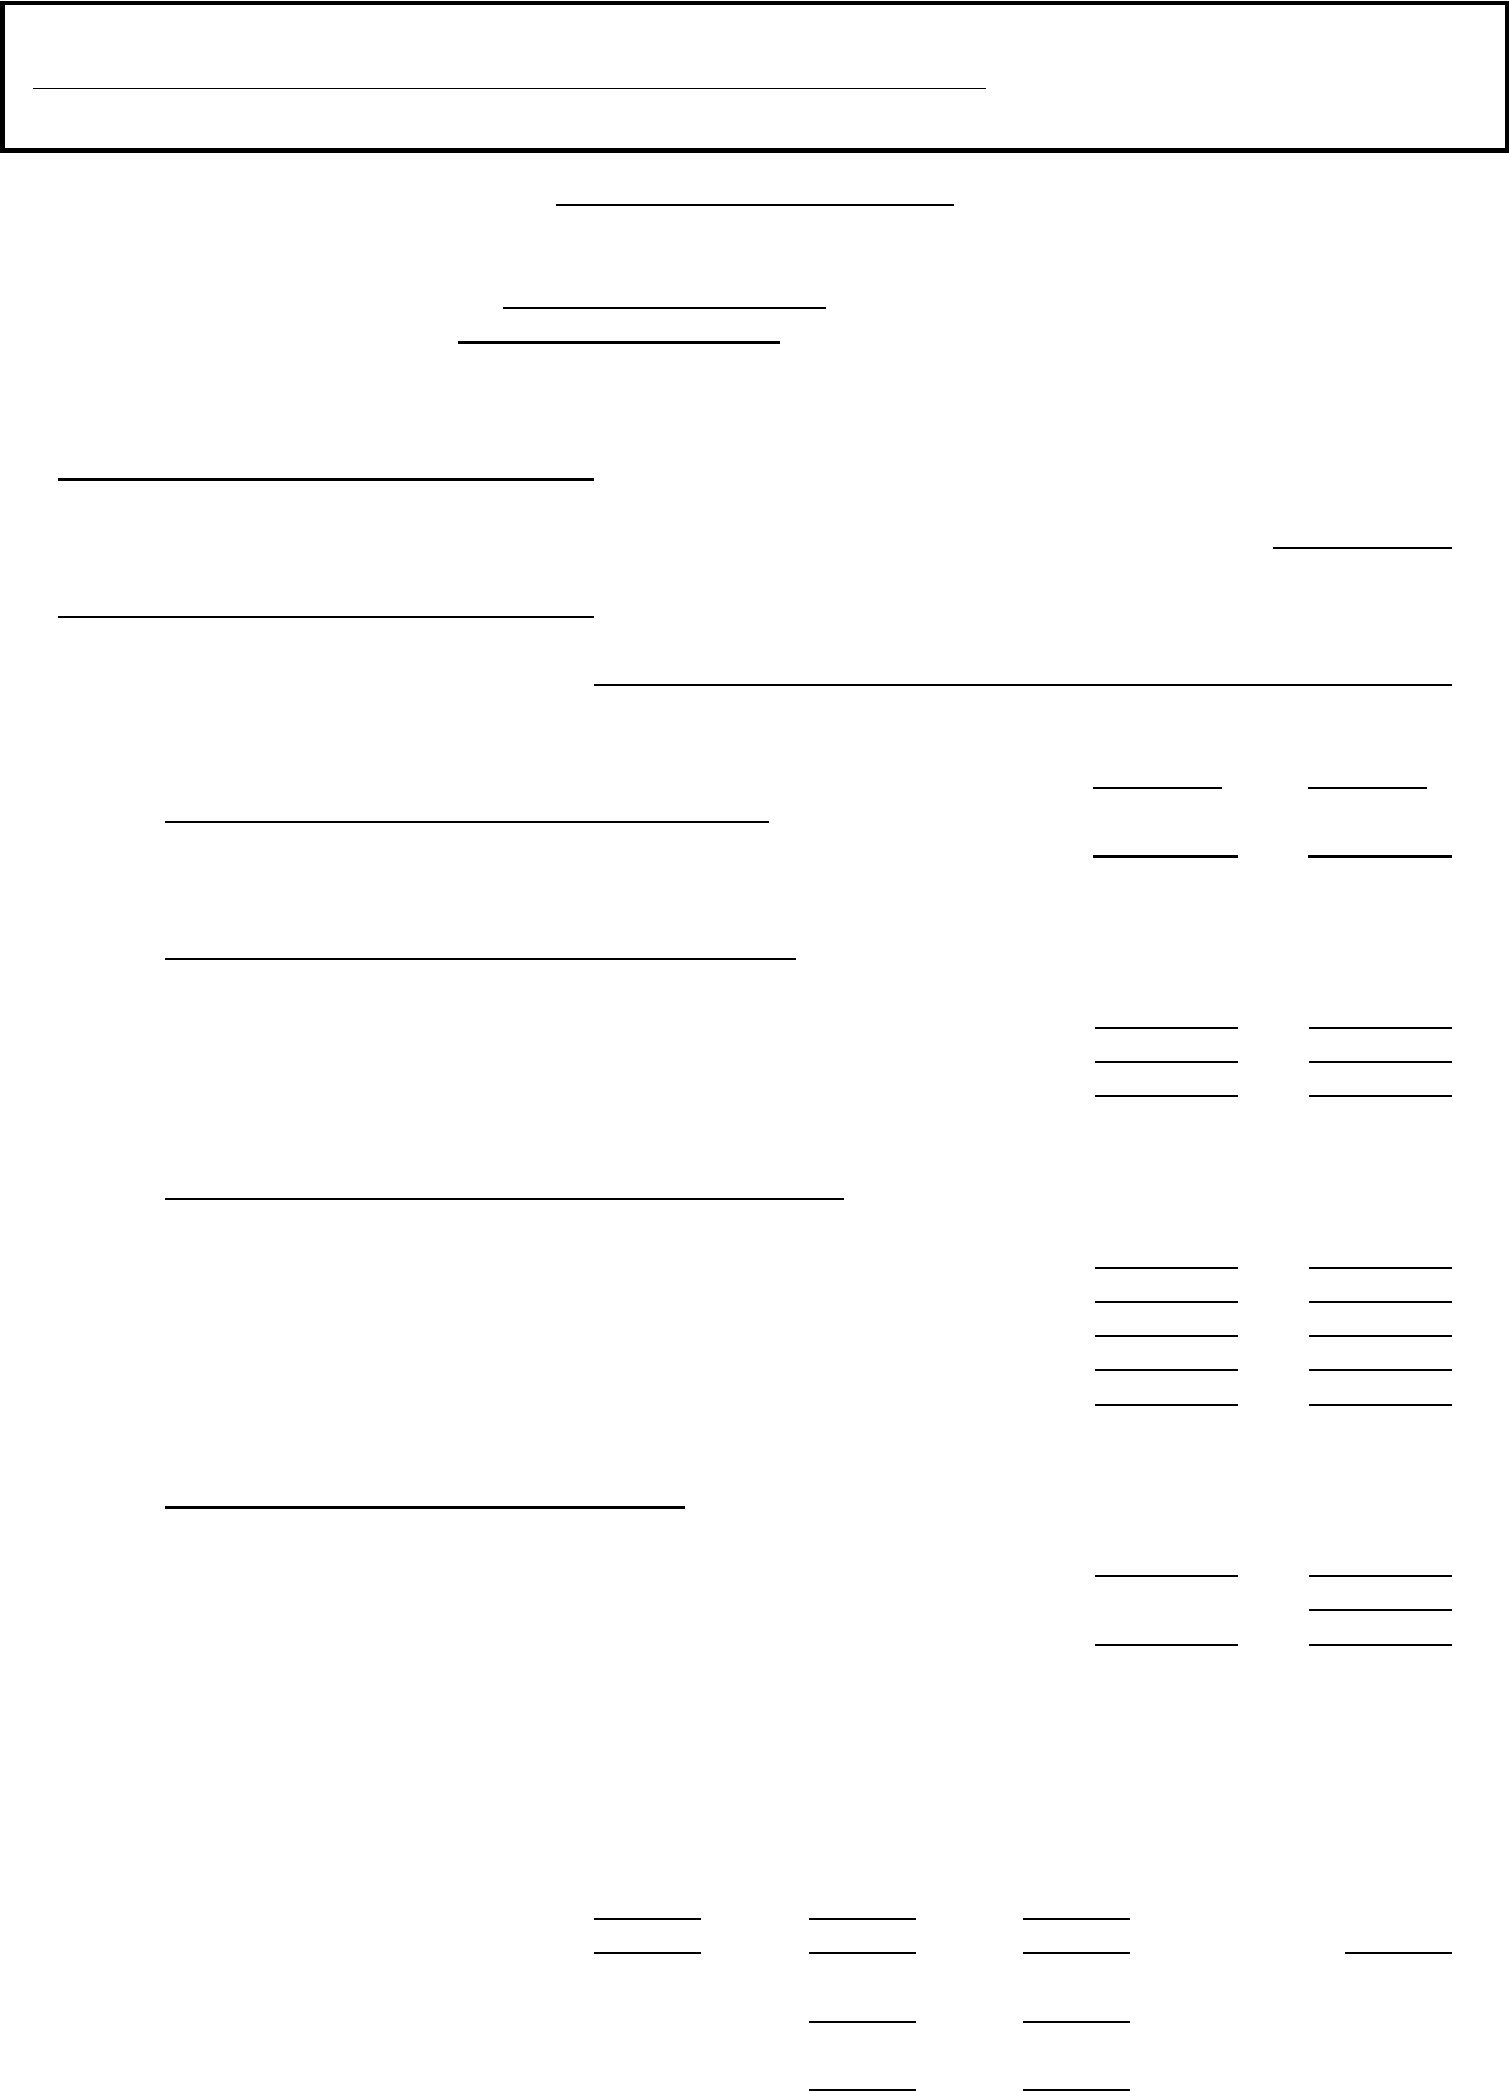 Calendar Worksheet Ks : Child support worksheet kansas free download